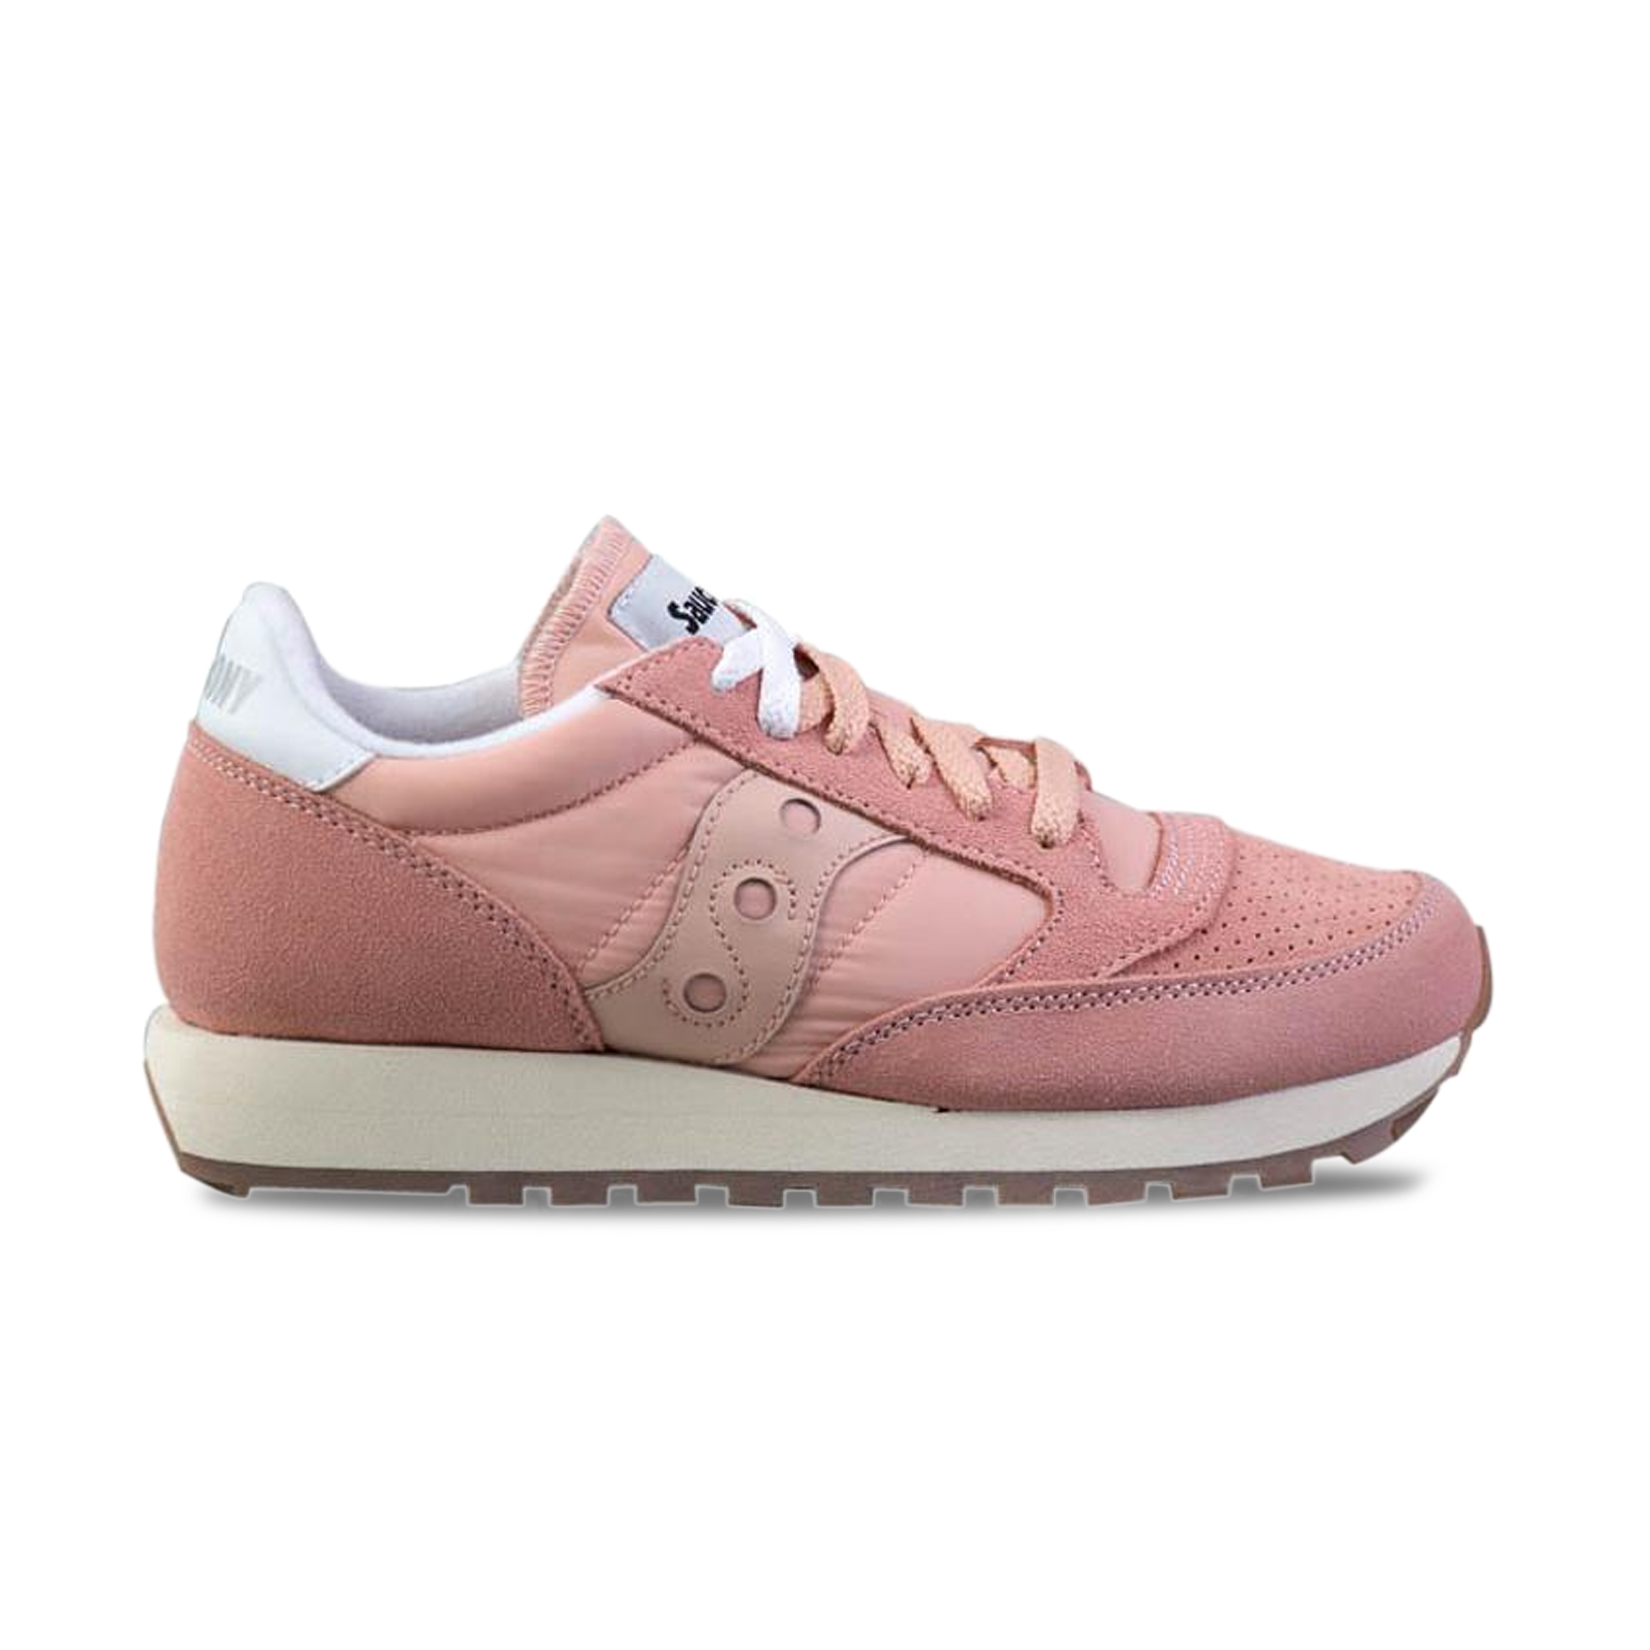 new style 3f2c6 dca89 Women's Shoes Saucony Jazz Original Vintage Pink| All-Sports.gr